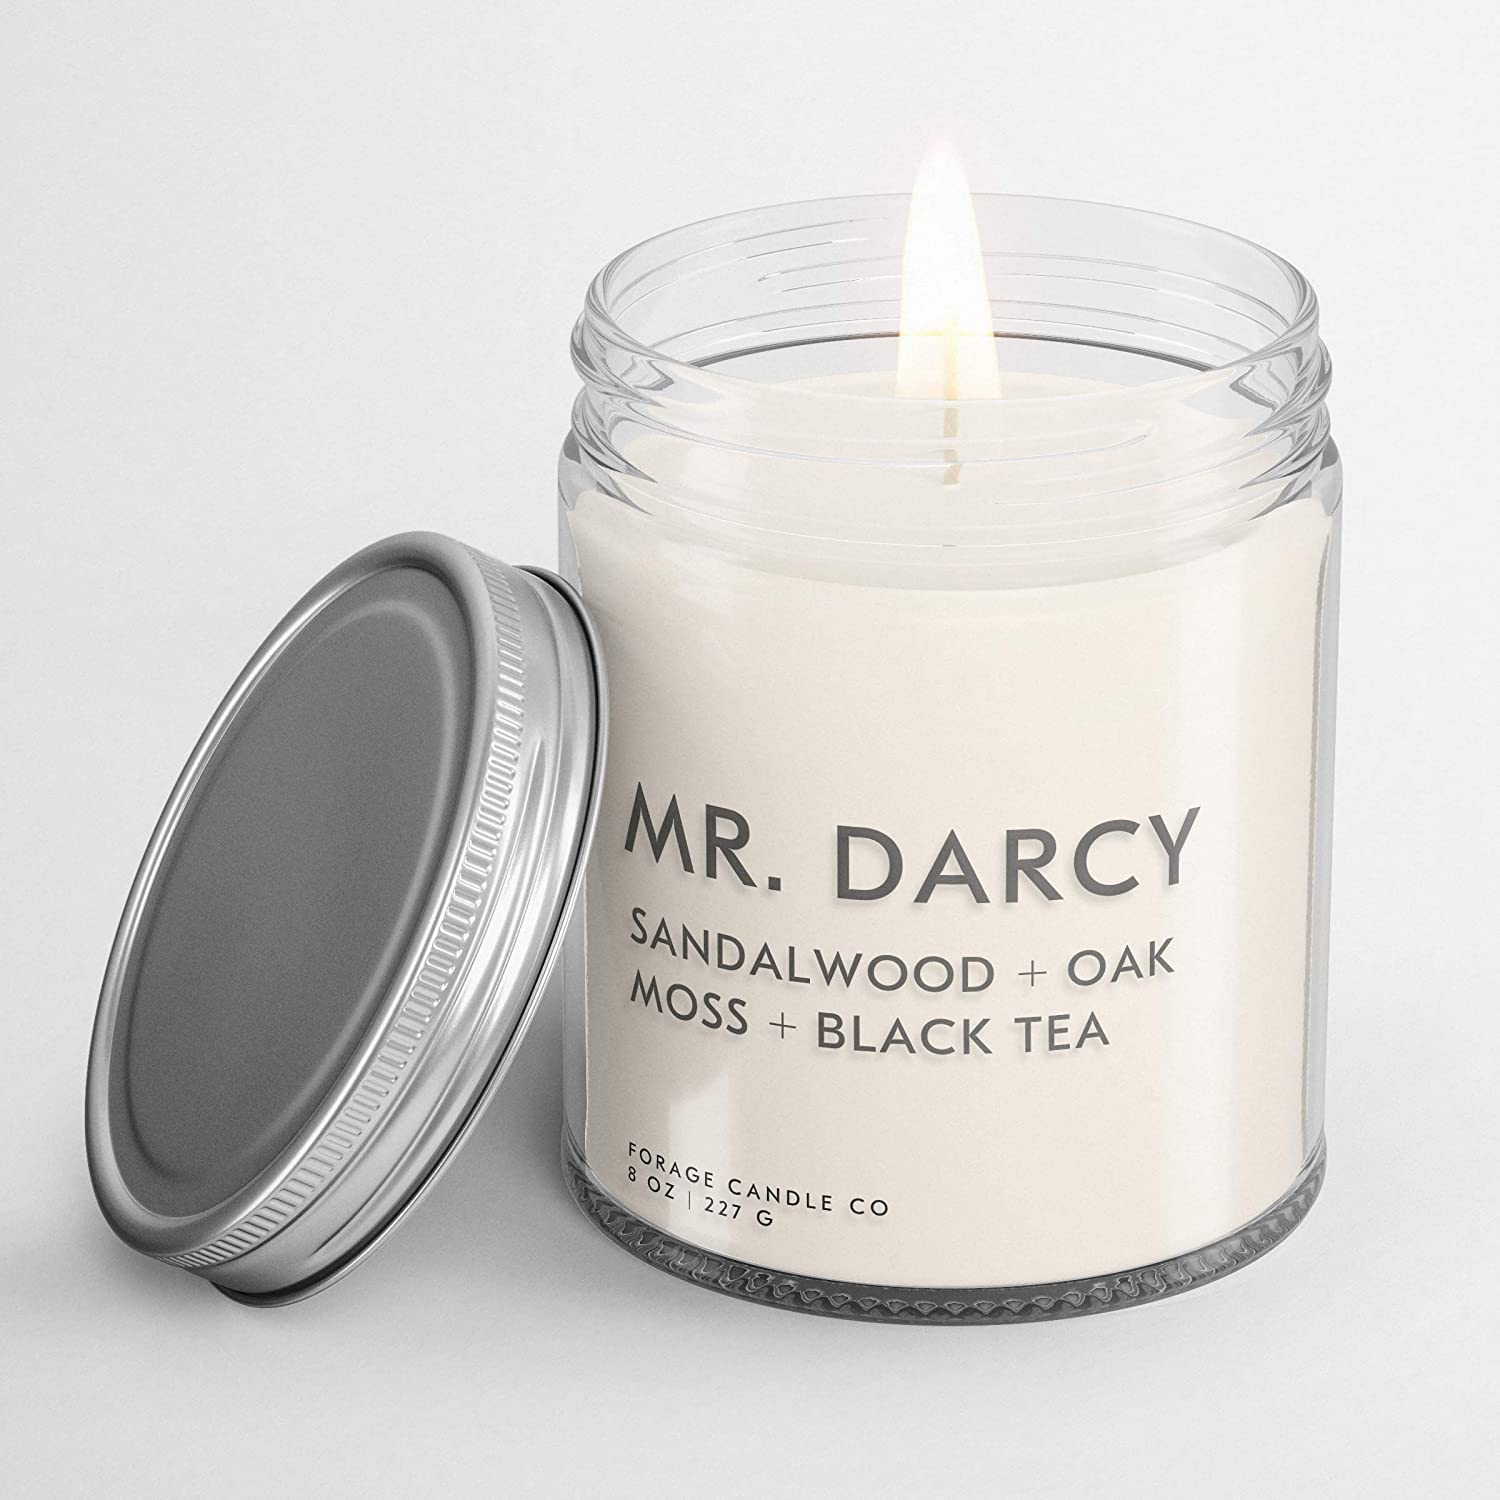 MR. DARCY Book Lovers' Candle | Book Scented Candle | Vegan + Cruelty-Free + Phthalte-Free